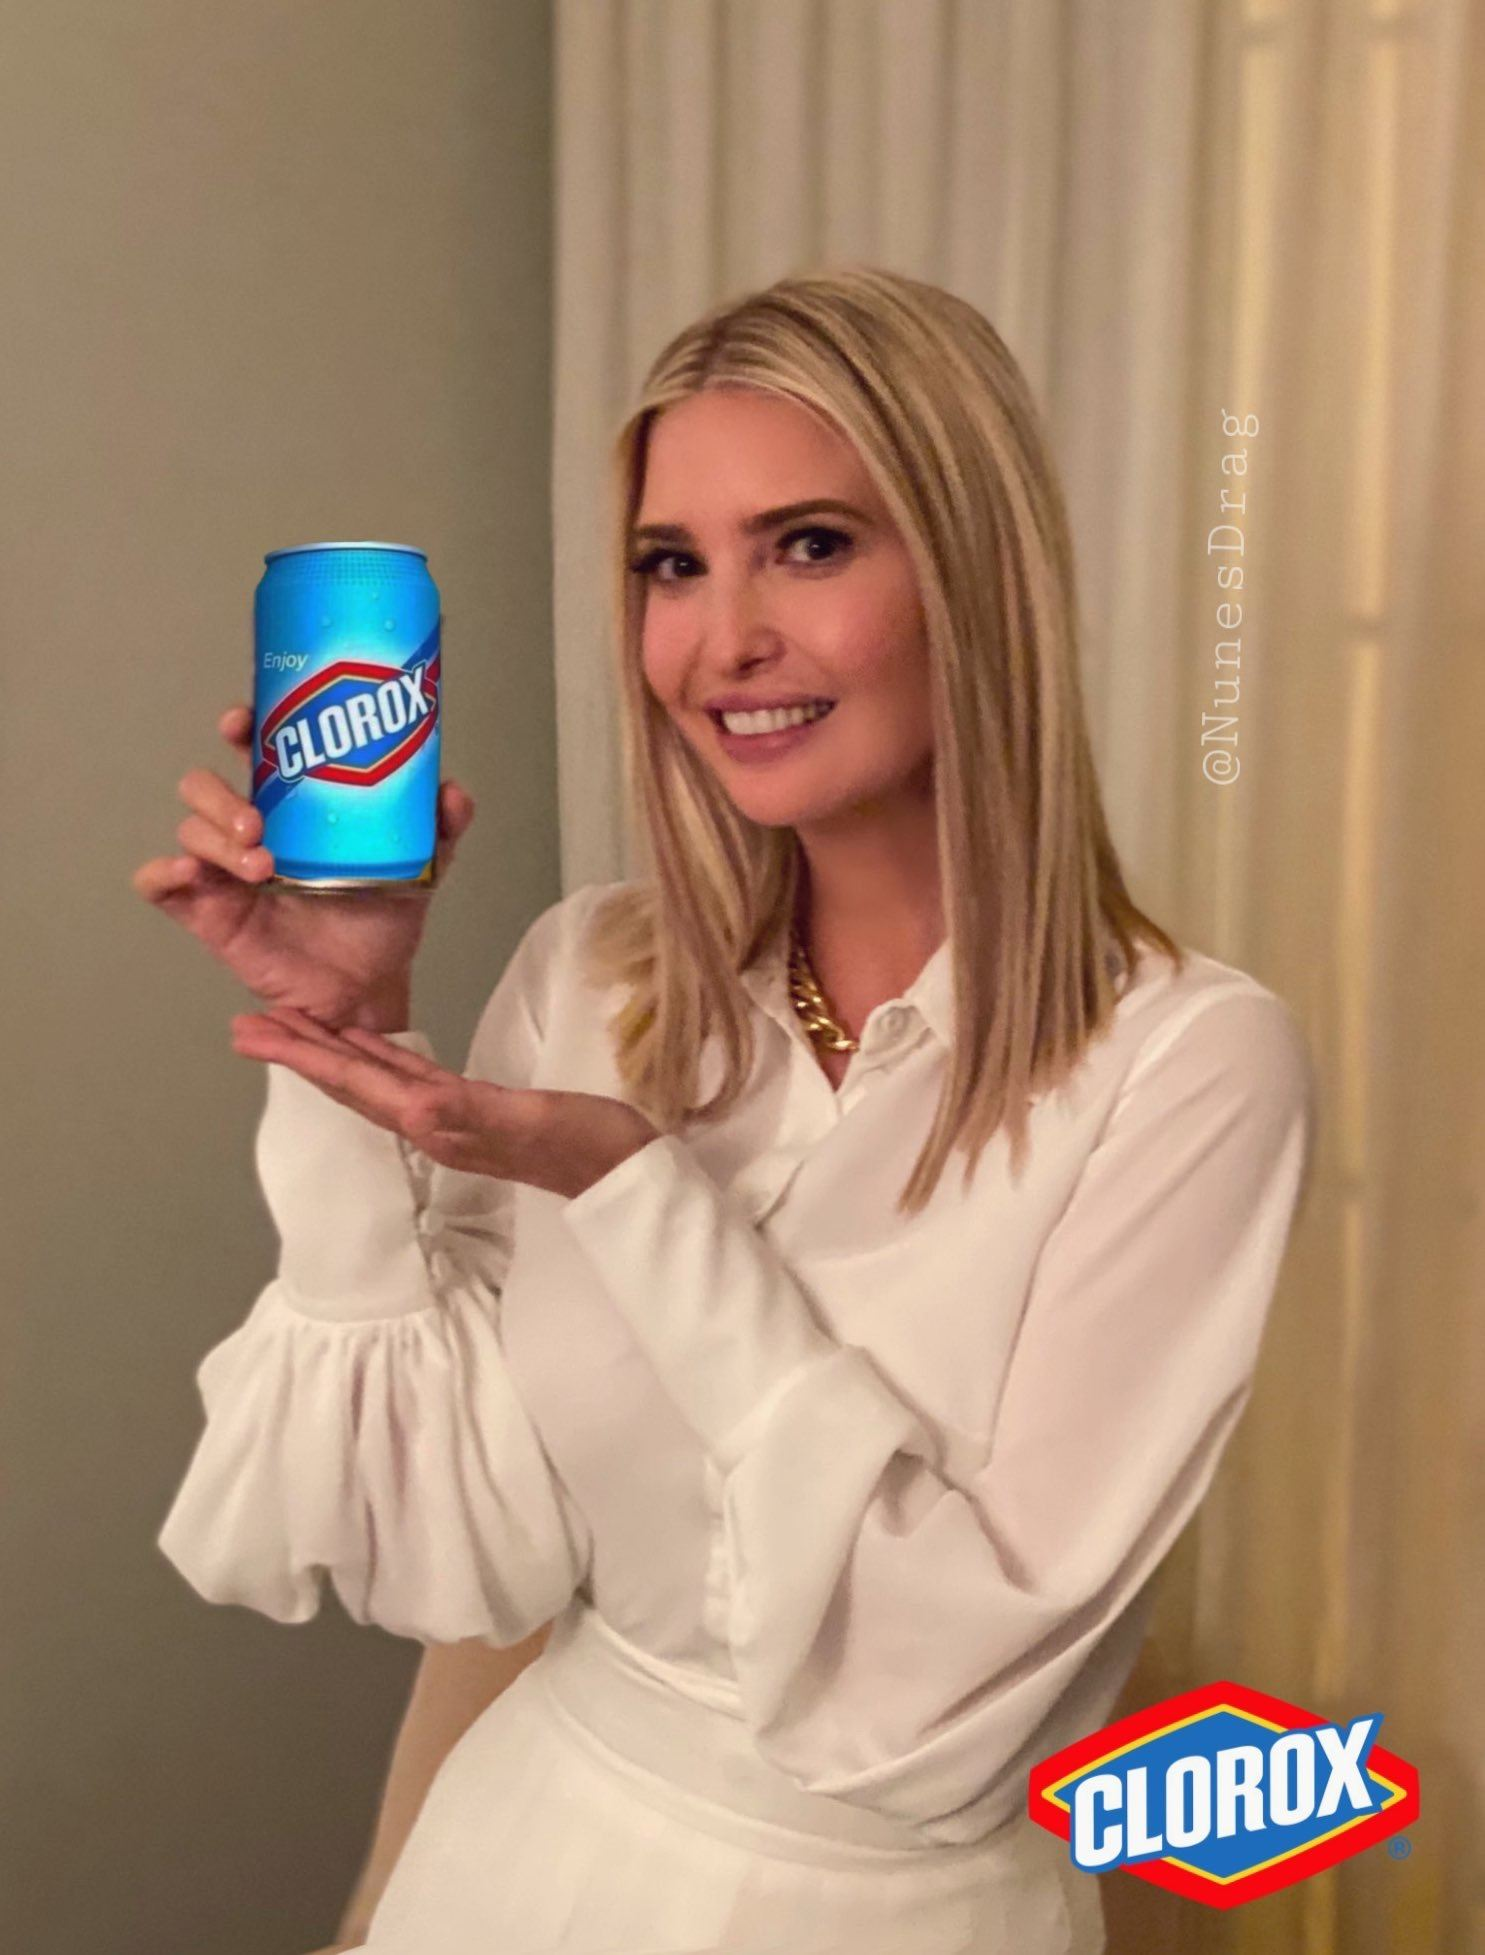 Ivanka Trump - Clorox Disinfectant Ingestion